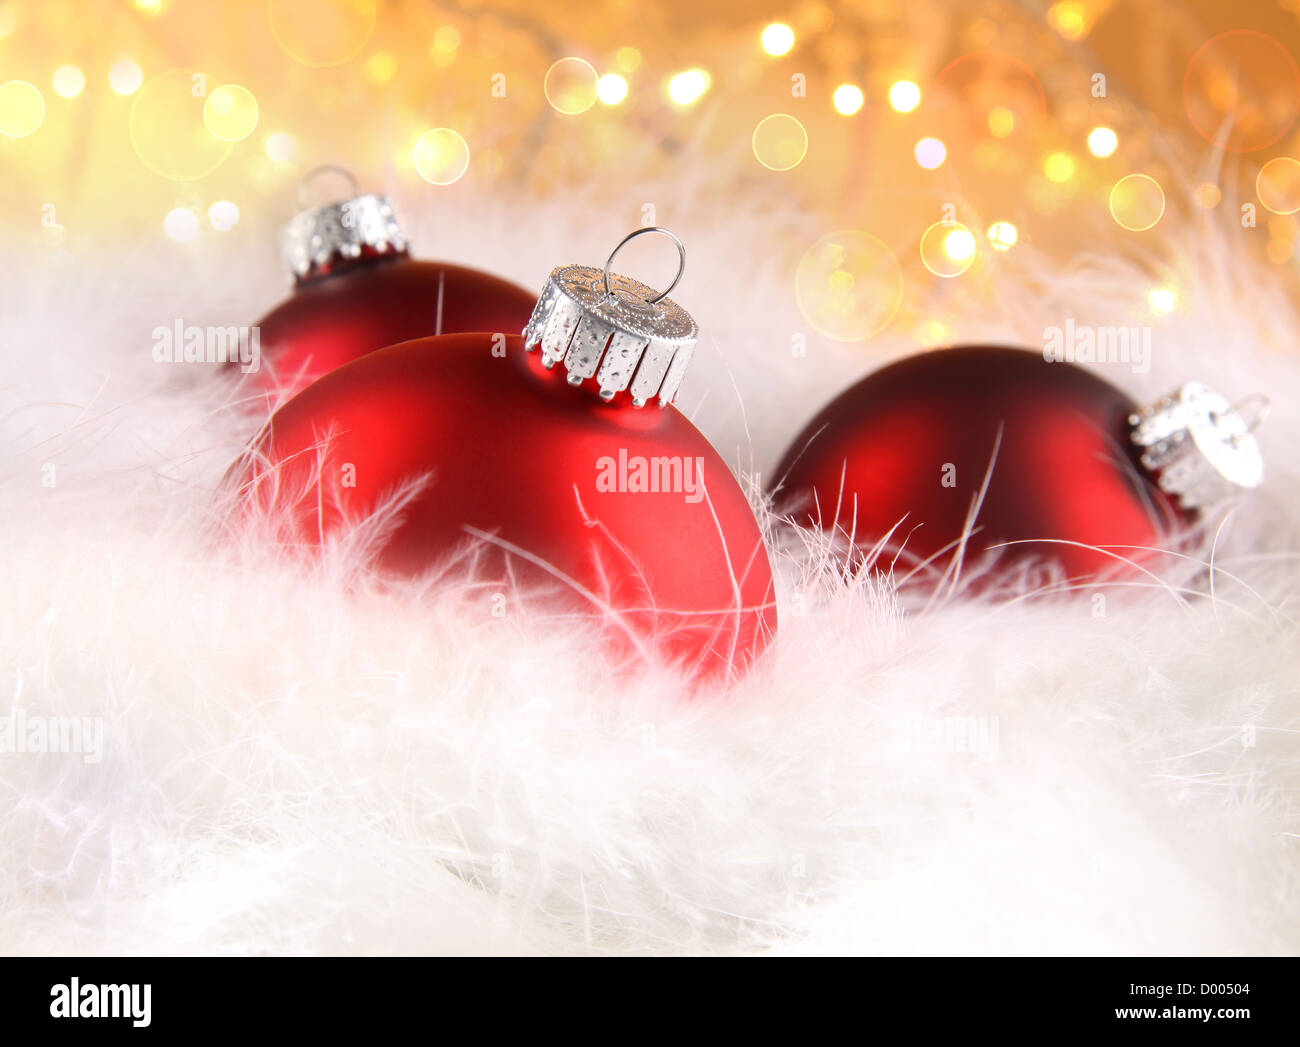 Red christmas balls with abstract holiday background - Stock Image